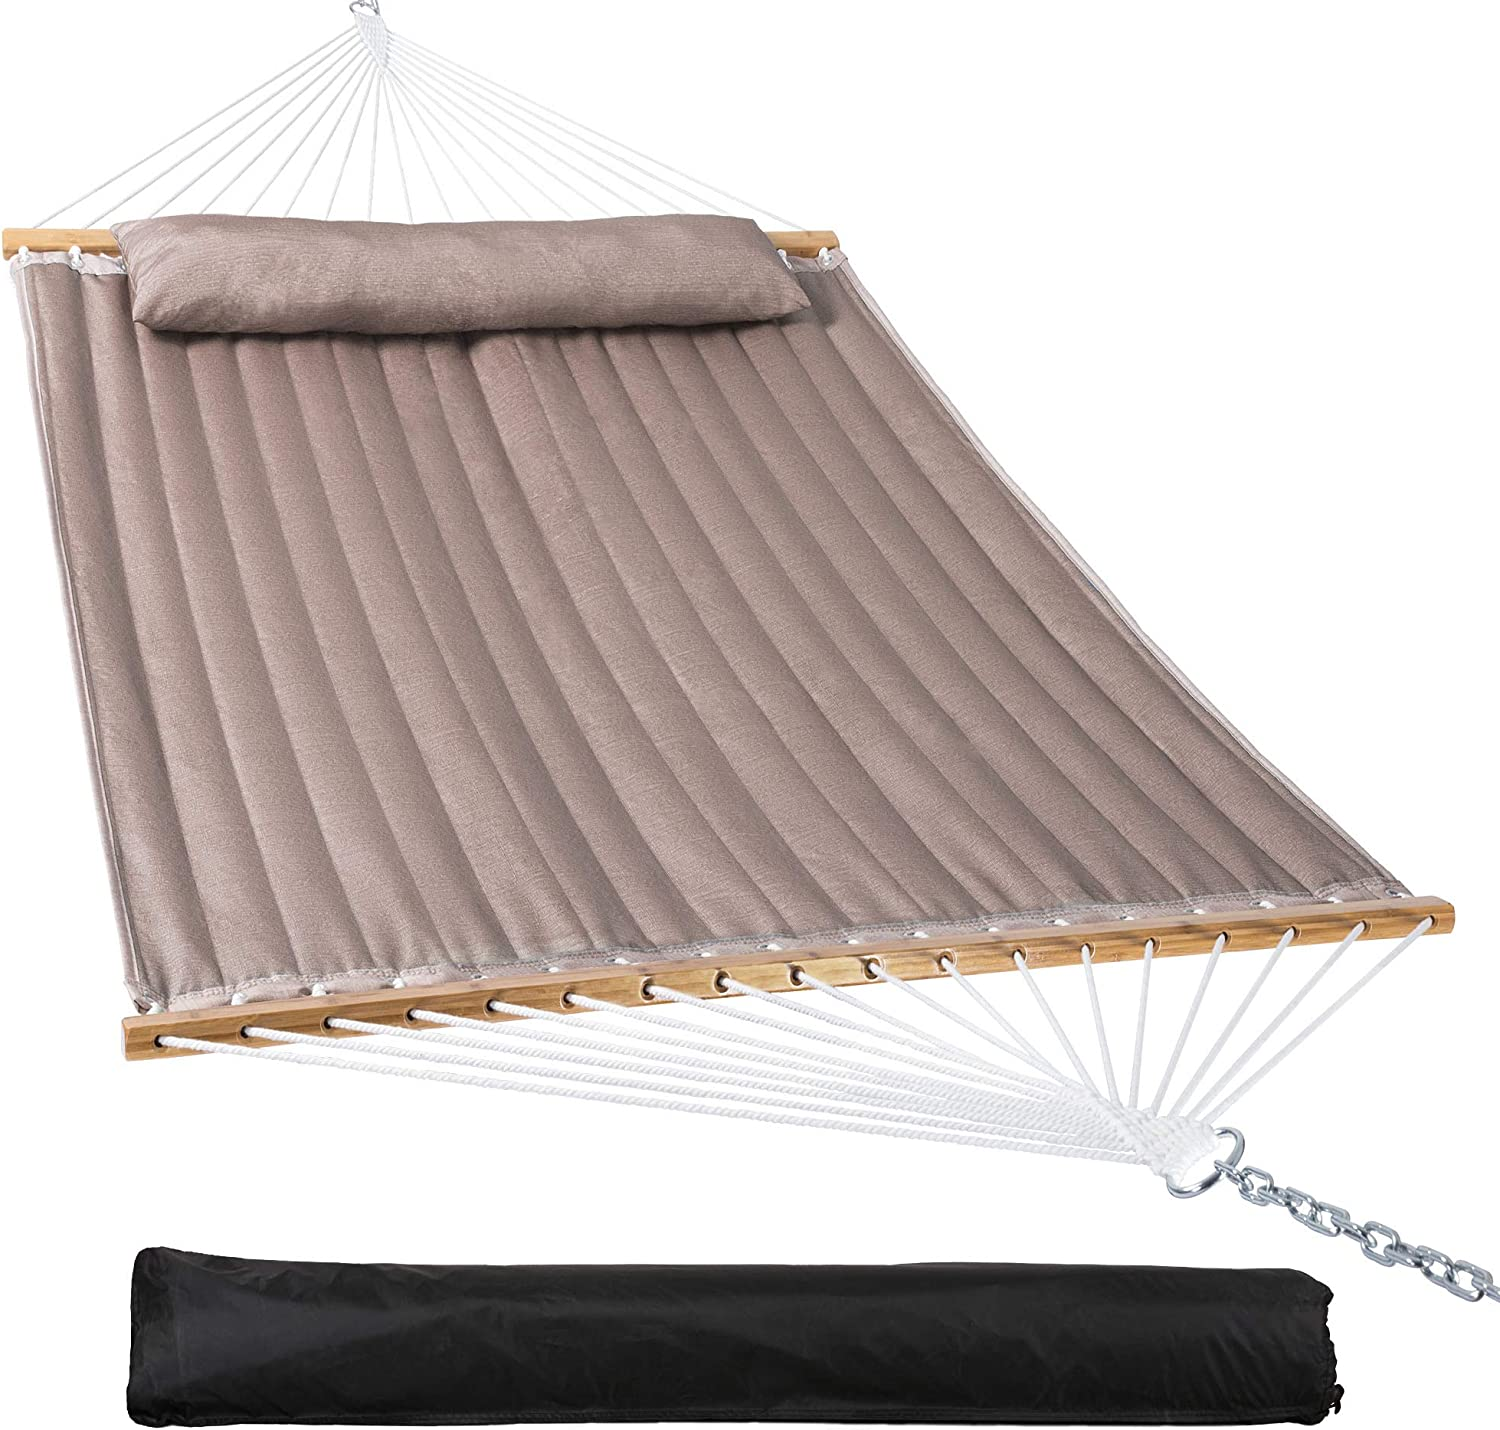 Mansion Home Portable Hammock Fixed price for sale Max 61% OFF 475 Capacity Lbs Outdoor